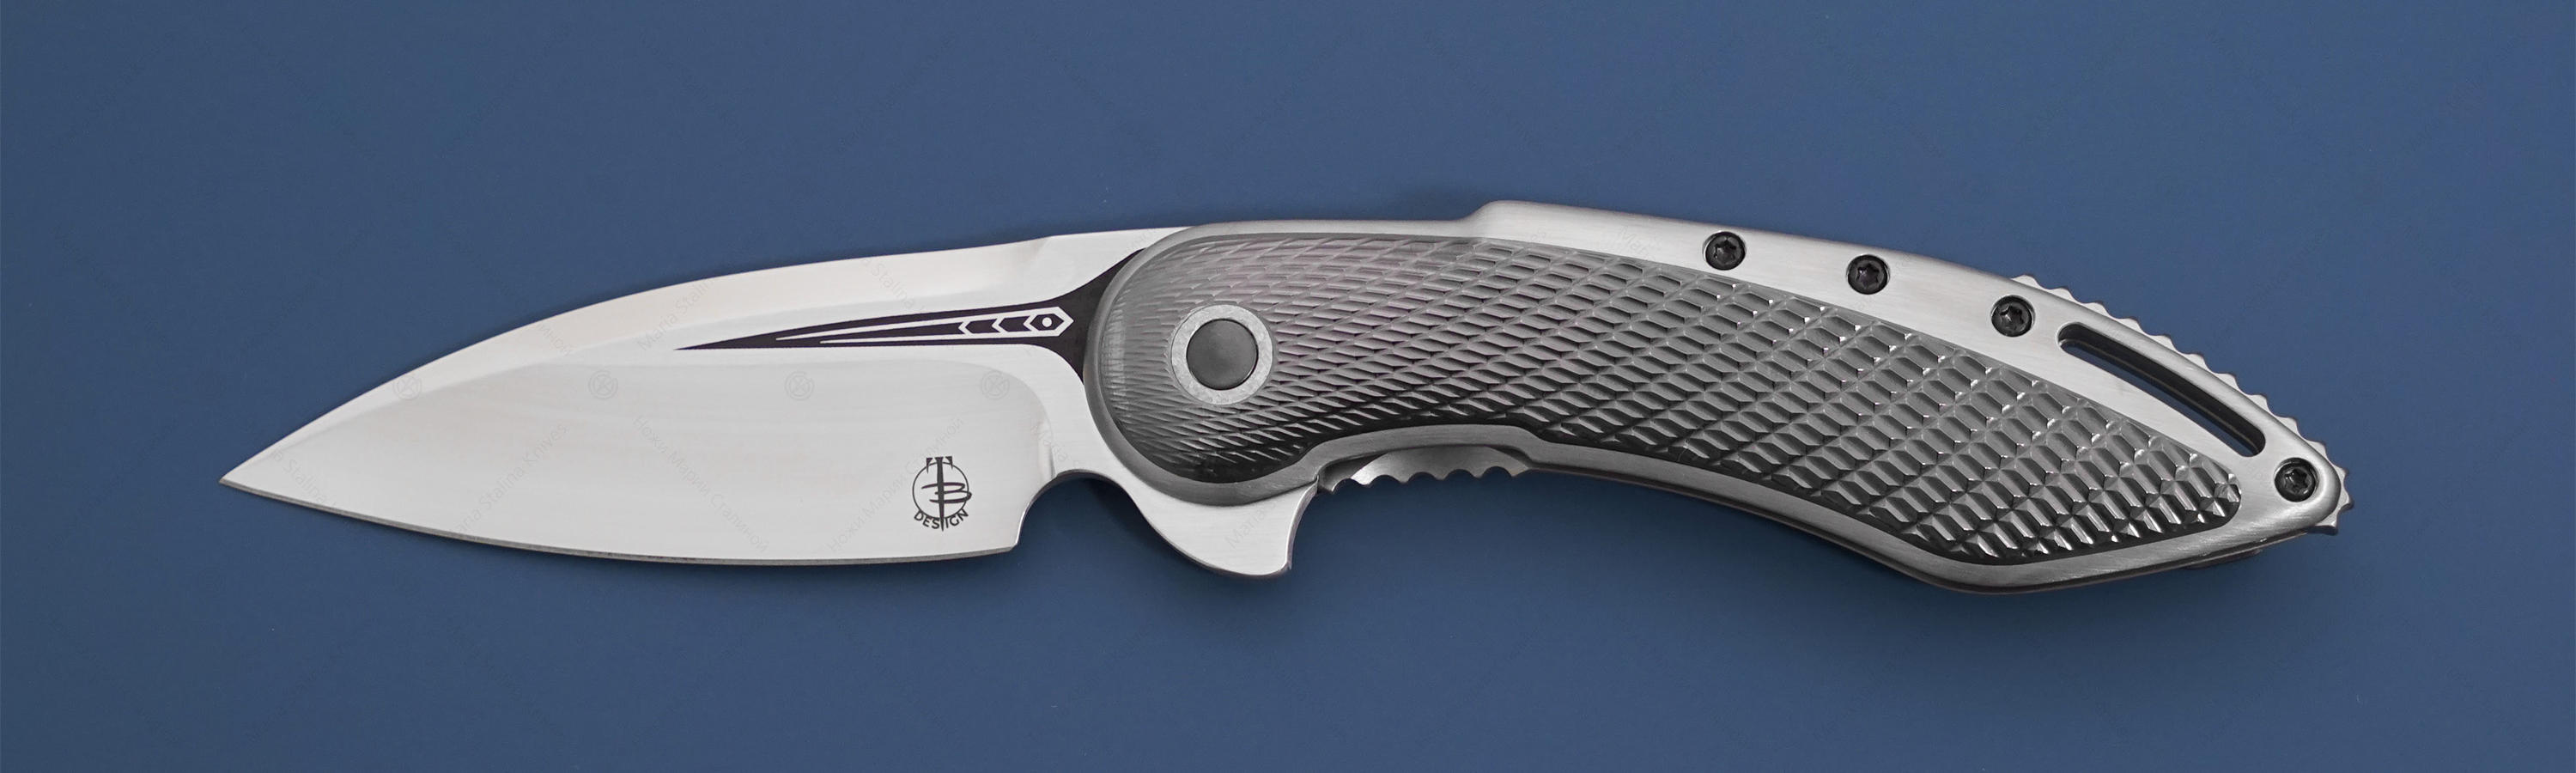 Begg Knives нож Glimpse Zirc Inlay